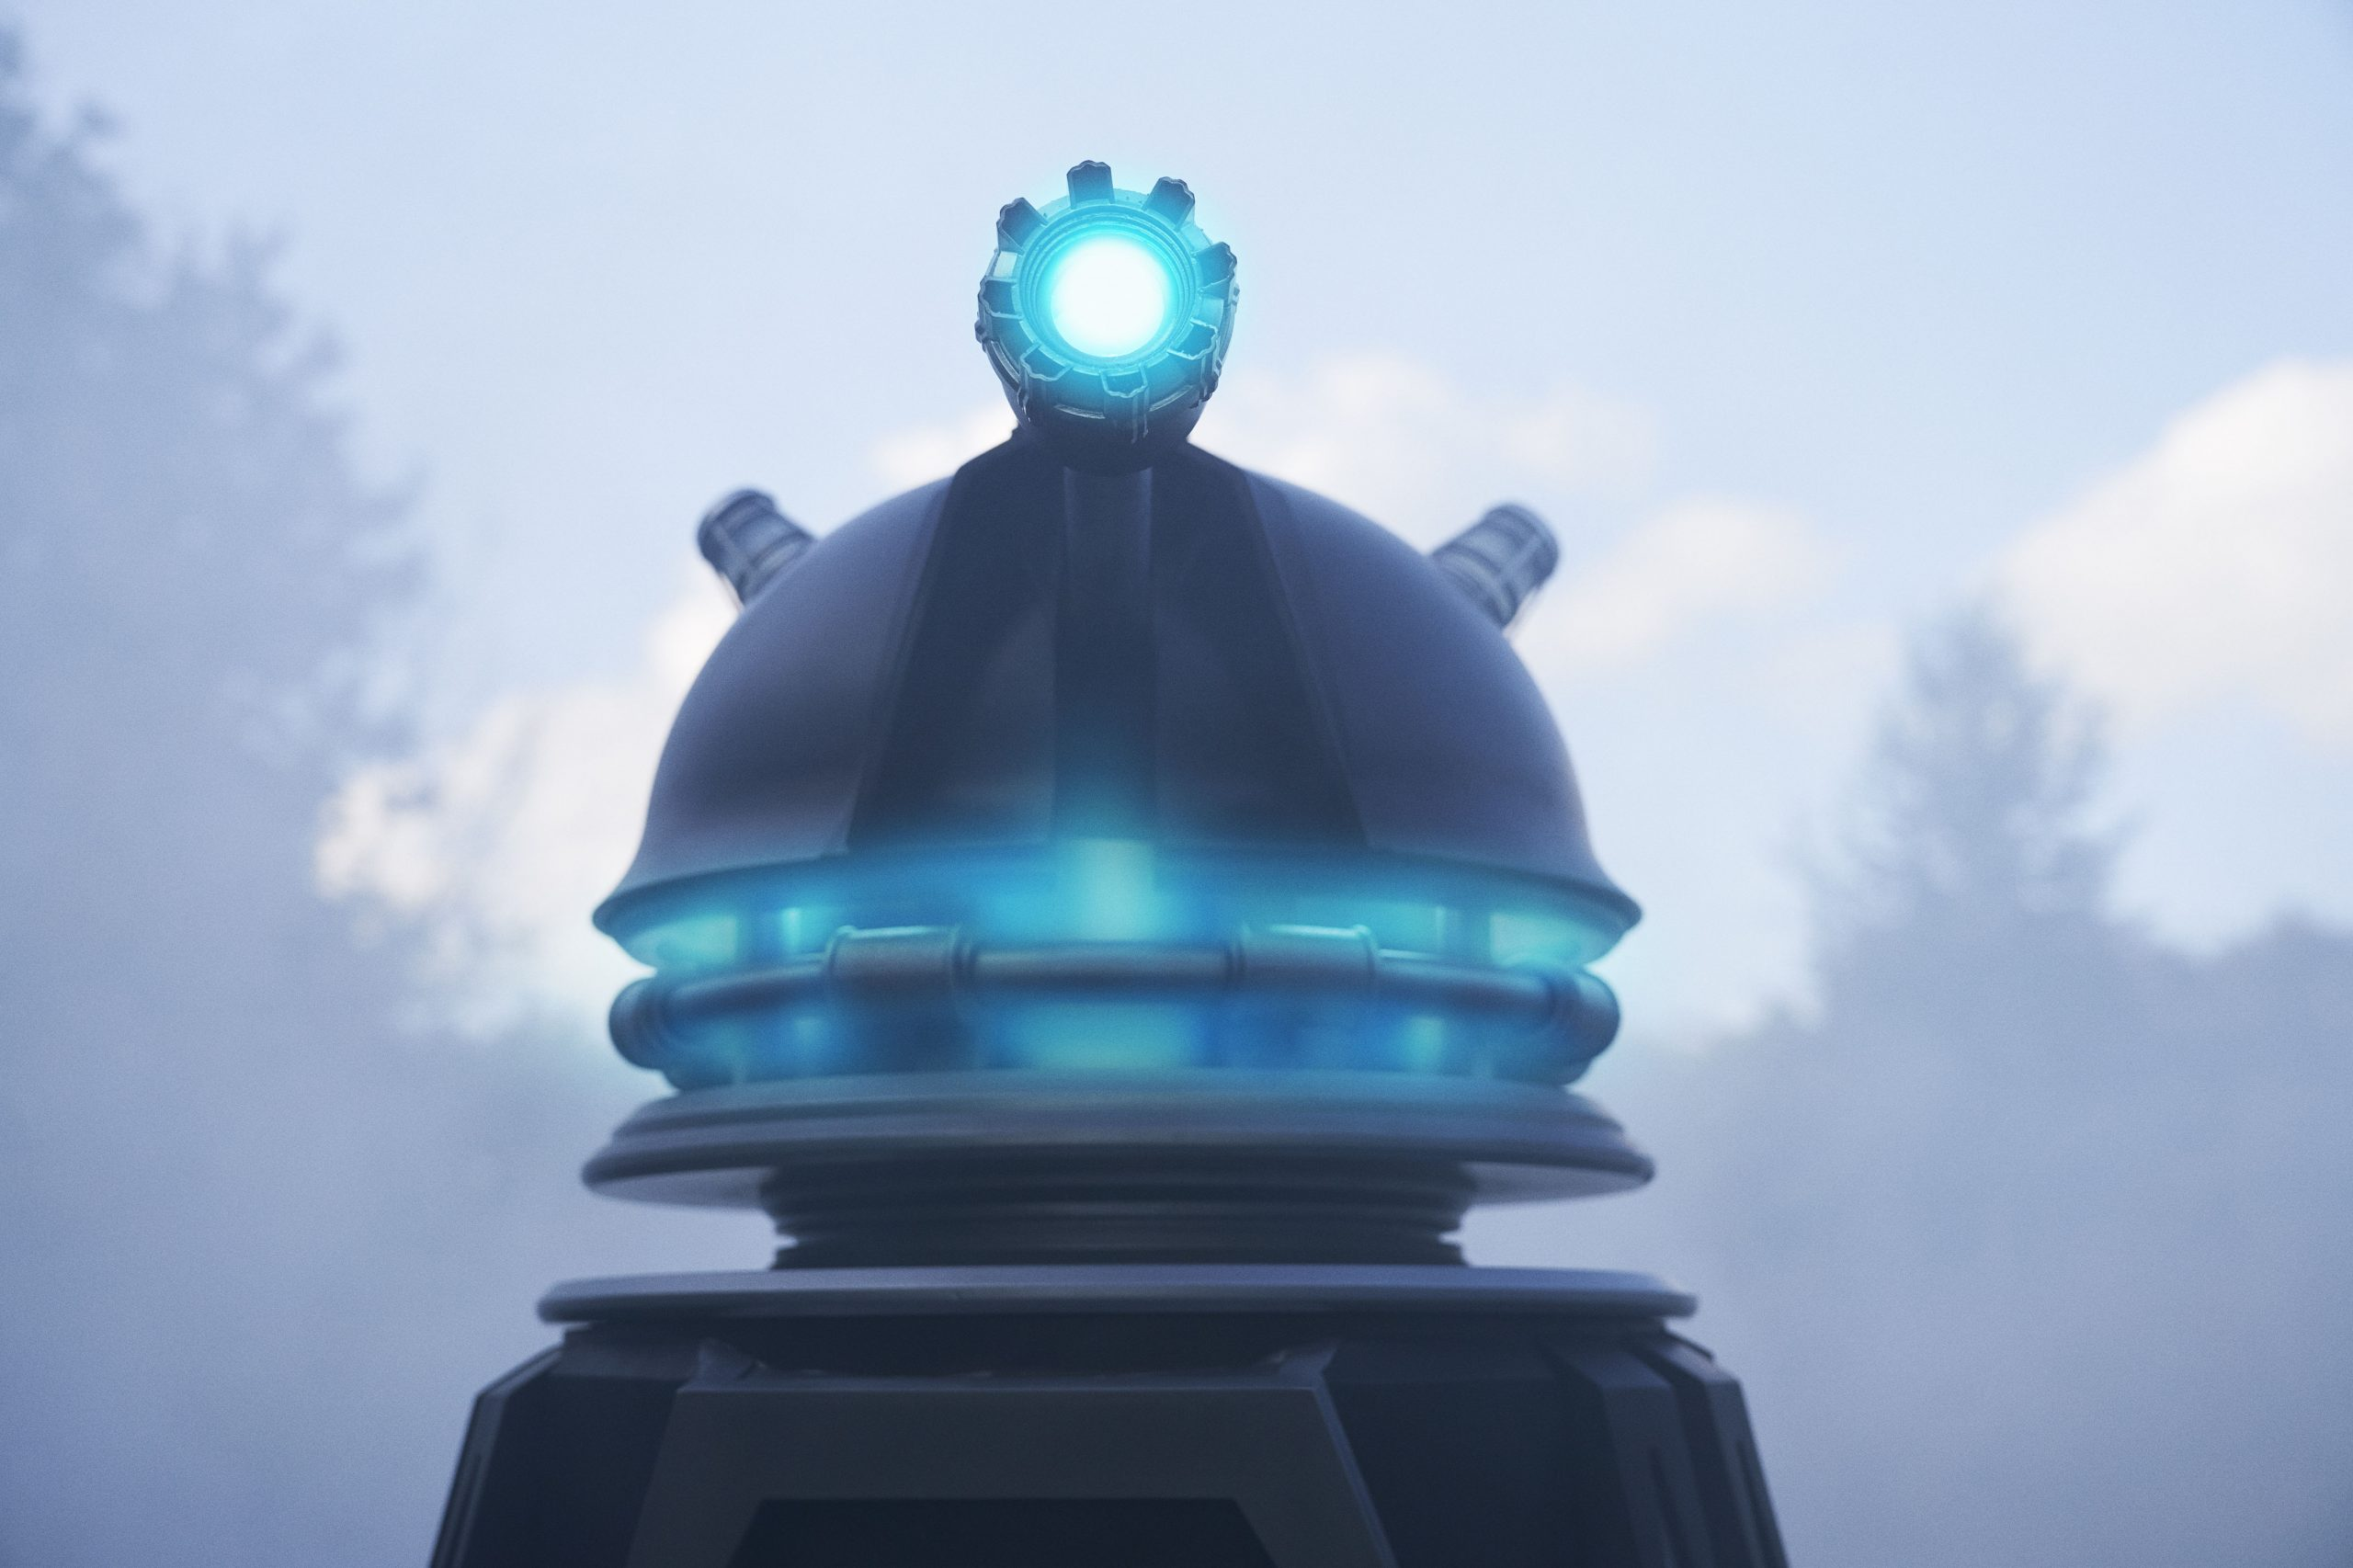 Doctor Who Special 2020 - Revolution Of The Daleks Picture Shows: Dalek - (C) BBC Studios - Photographer: Ben Blackall